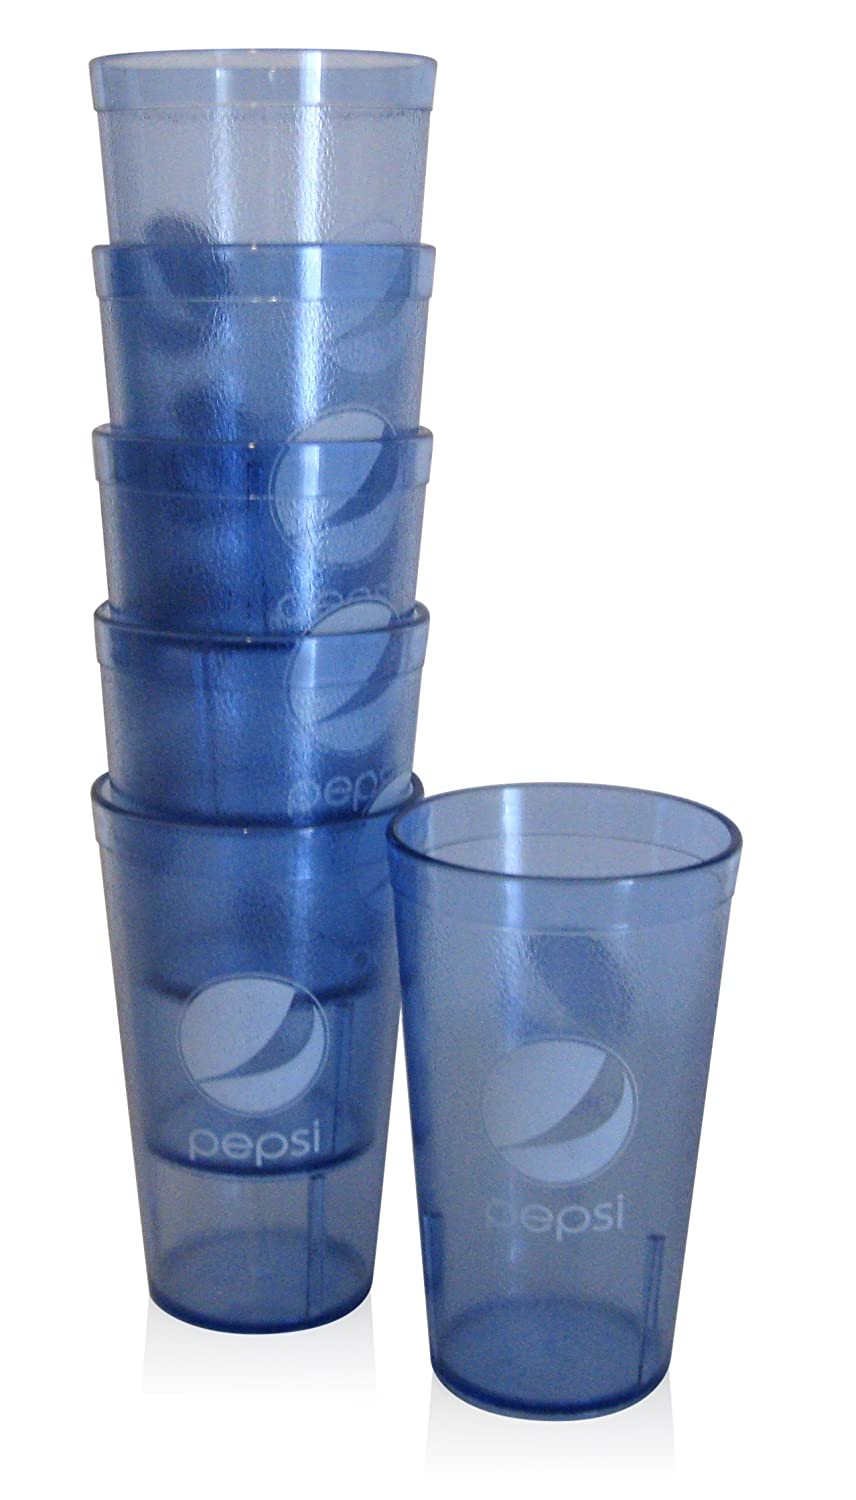 Carlisel Pepsi-cola Commercial Restaurant Acrylic Drinking Glasses Tumblers Cups (6), Light Blue 5216IB